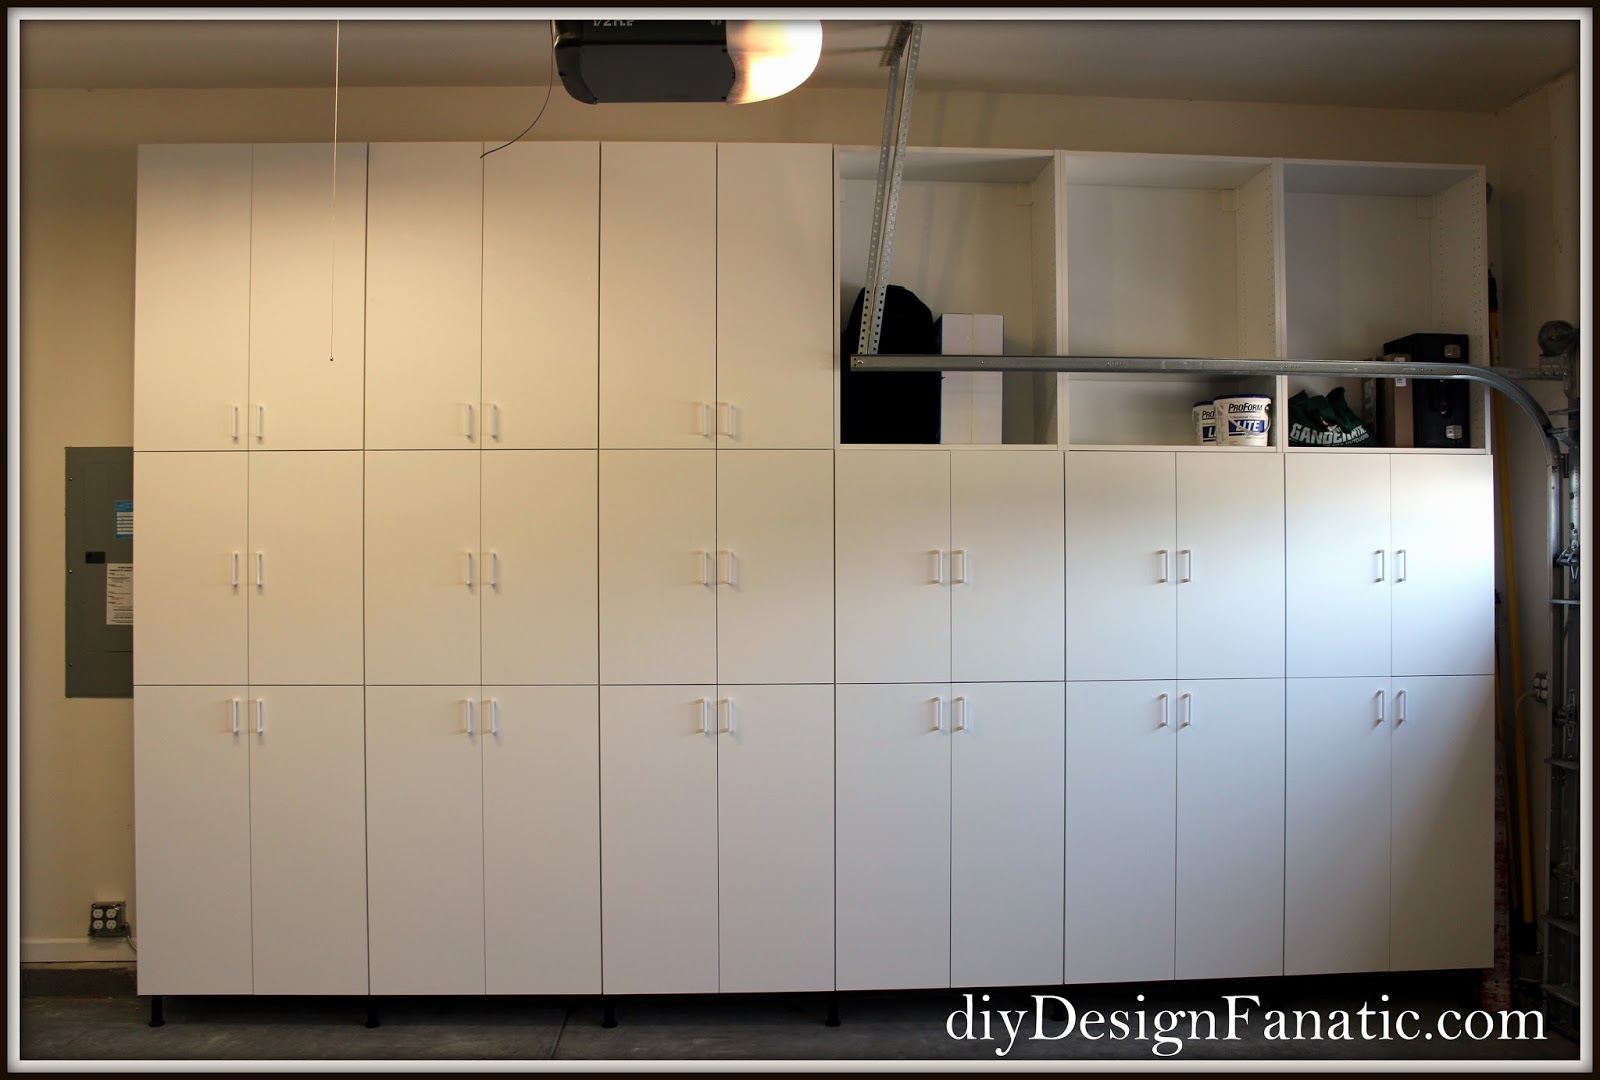 Diy design fanatic diy storage how to store your stuff storage diydesignfanatic storage shelves diy storage shelves basement storage solutioingenieria Choice Image